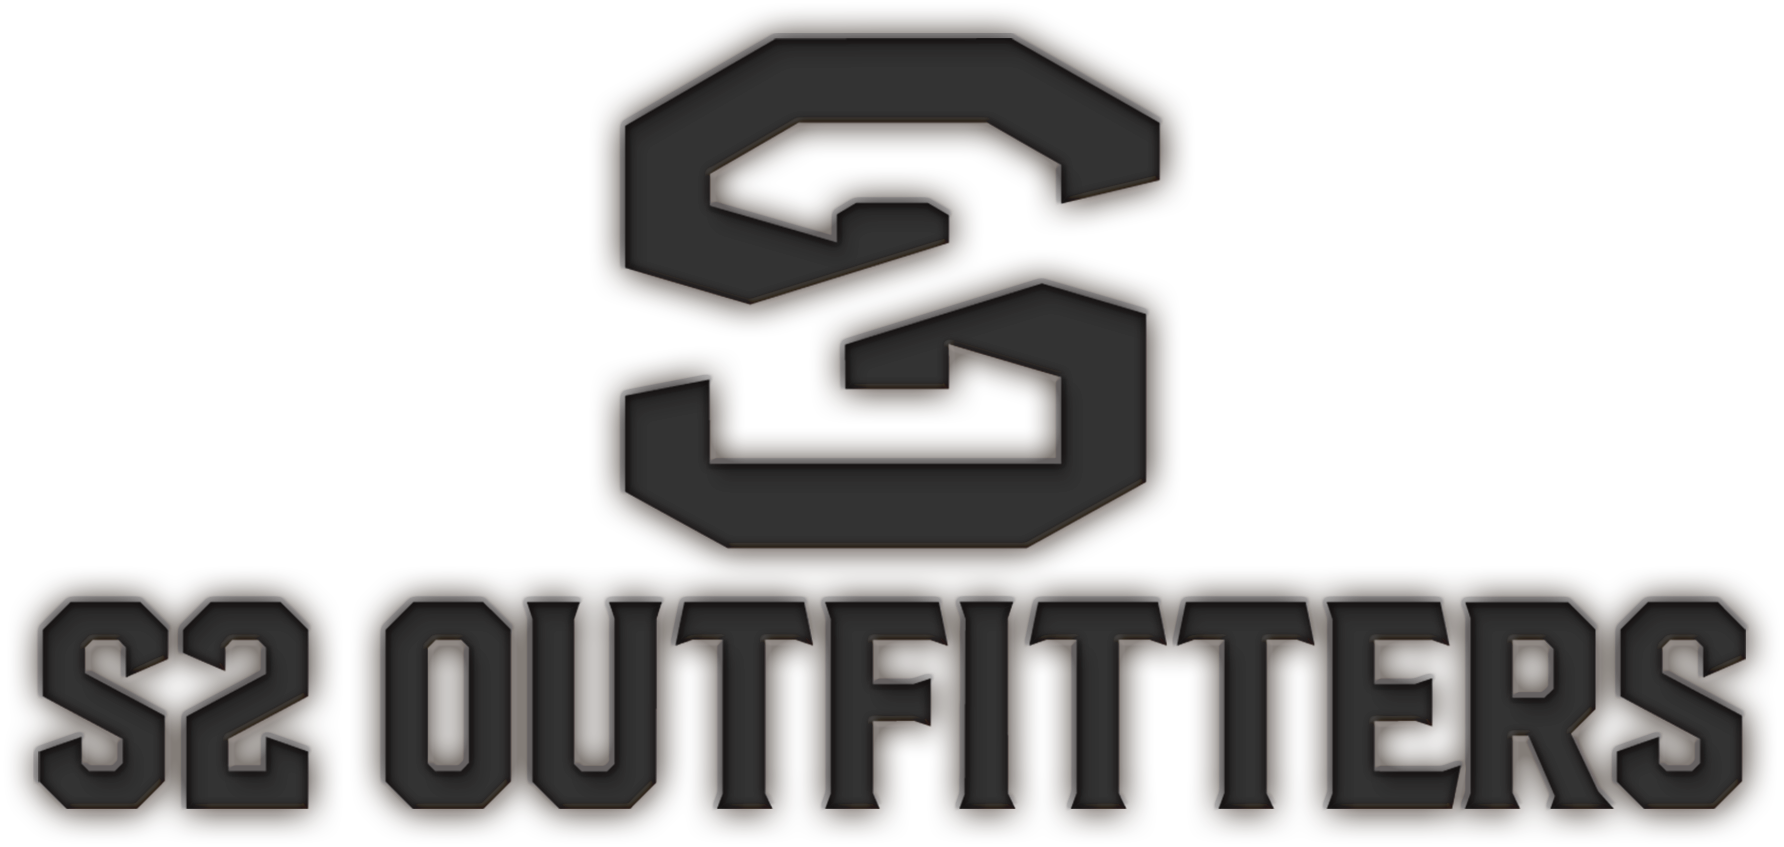 S2 Outfitters